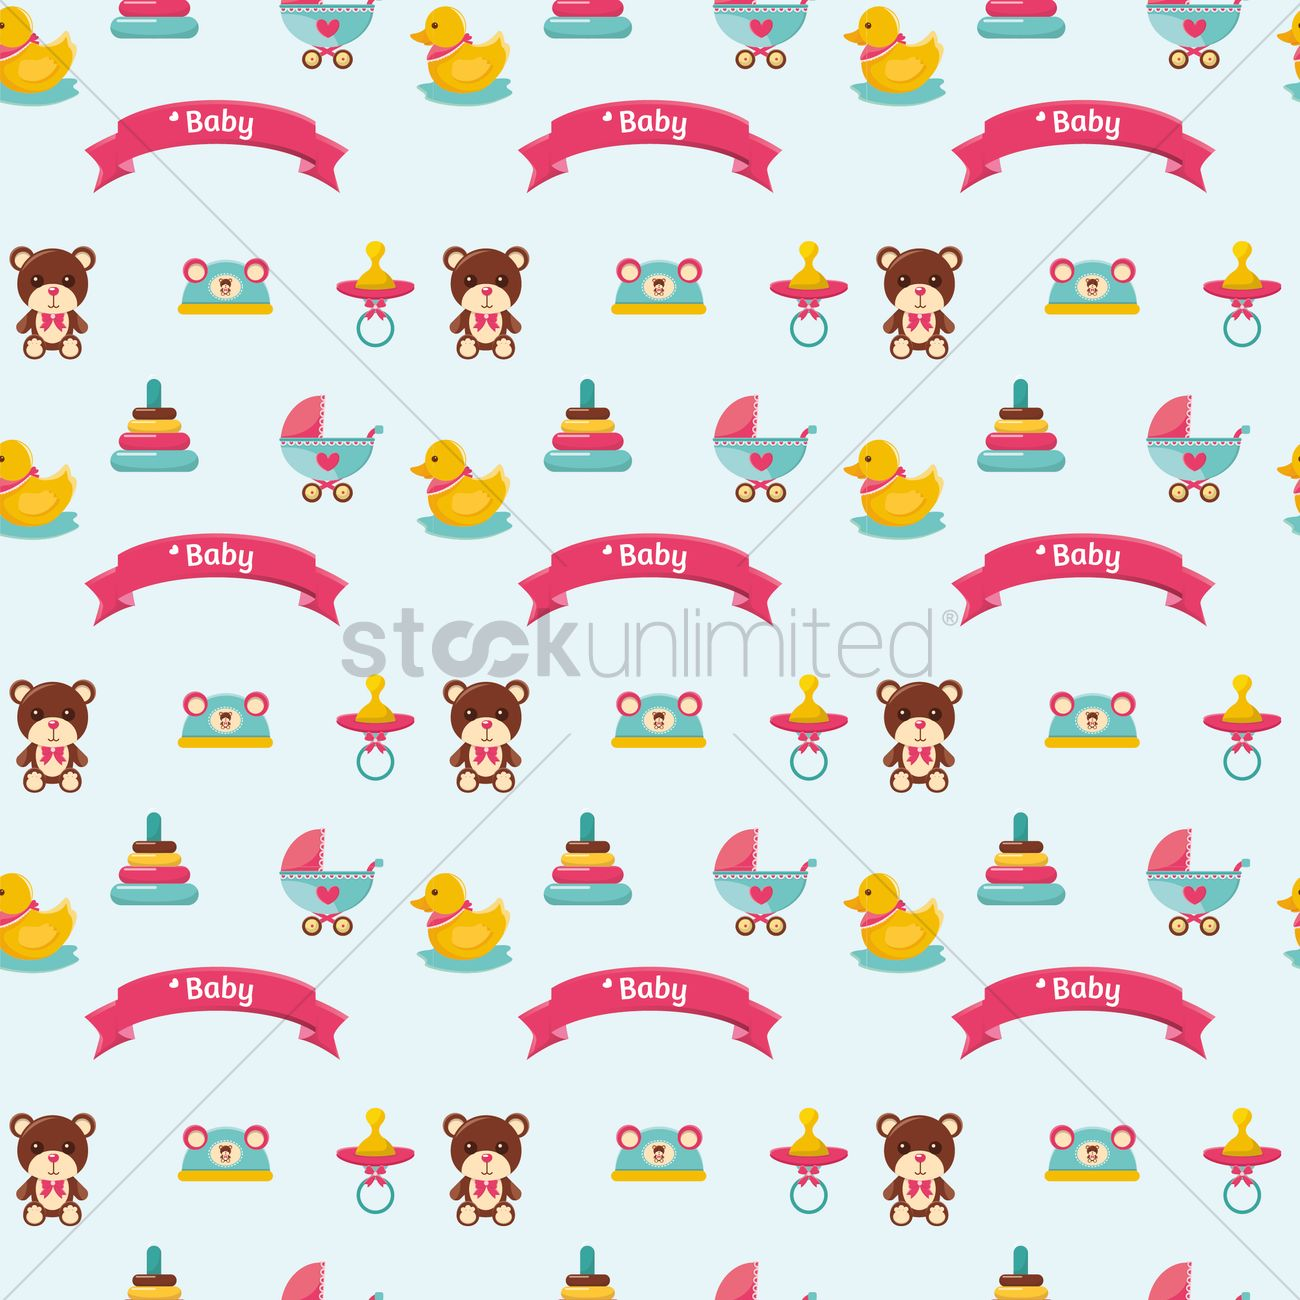 Free baby items background vector image 1296039 stockunlimited free baby items background vector graphic voltagebd Choice Image